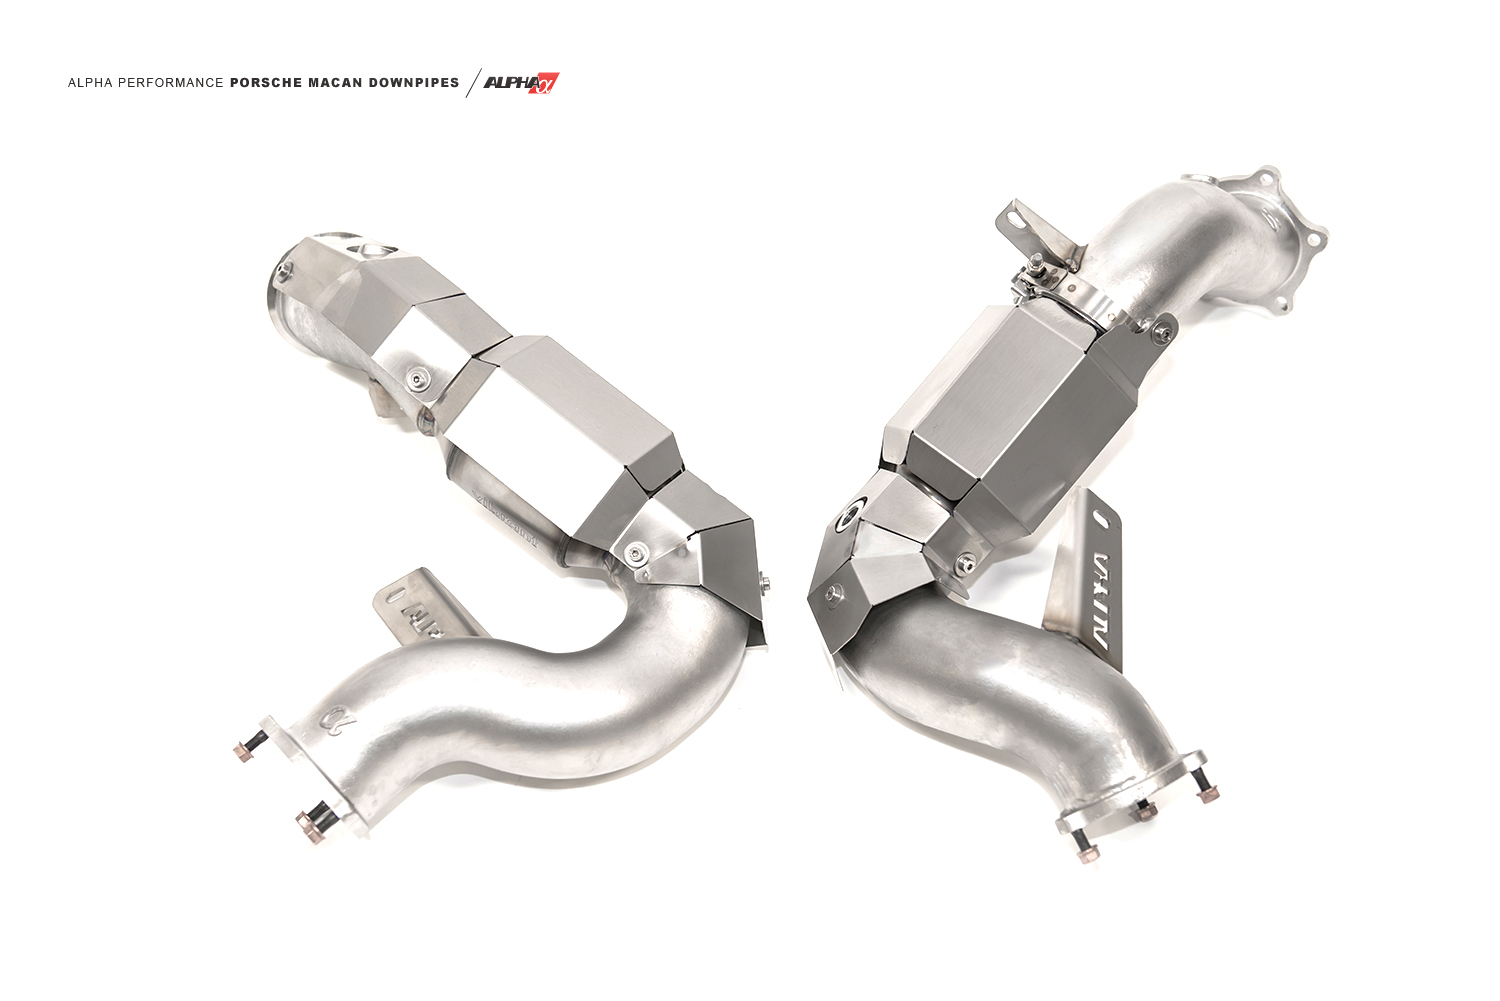 hight resolution of alpha porsche macan downpipes mods upgrade kit